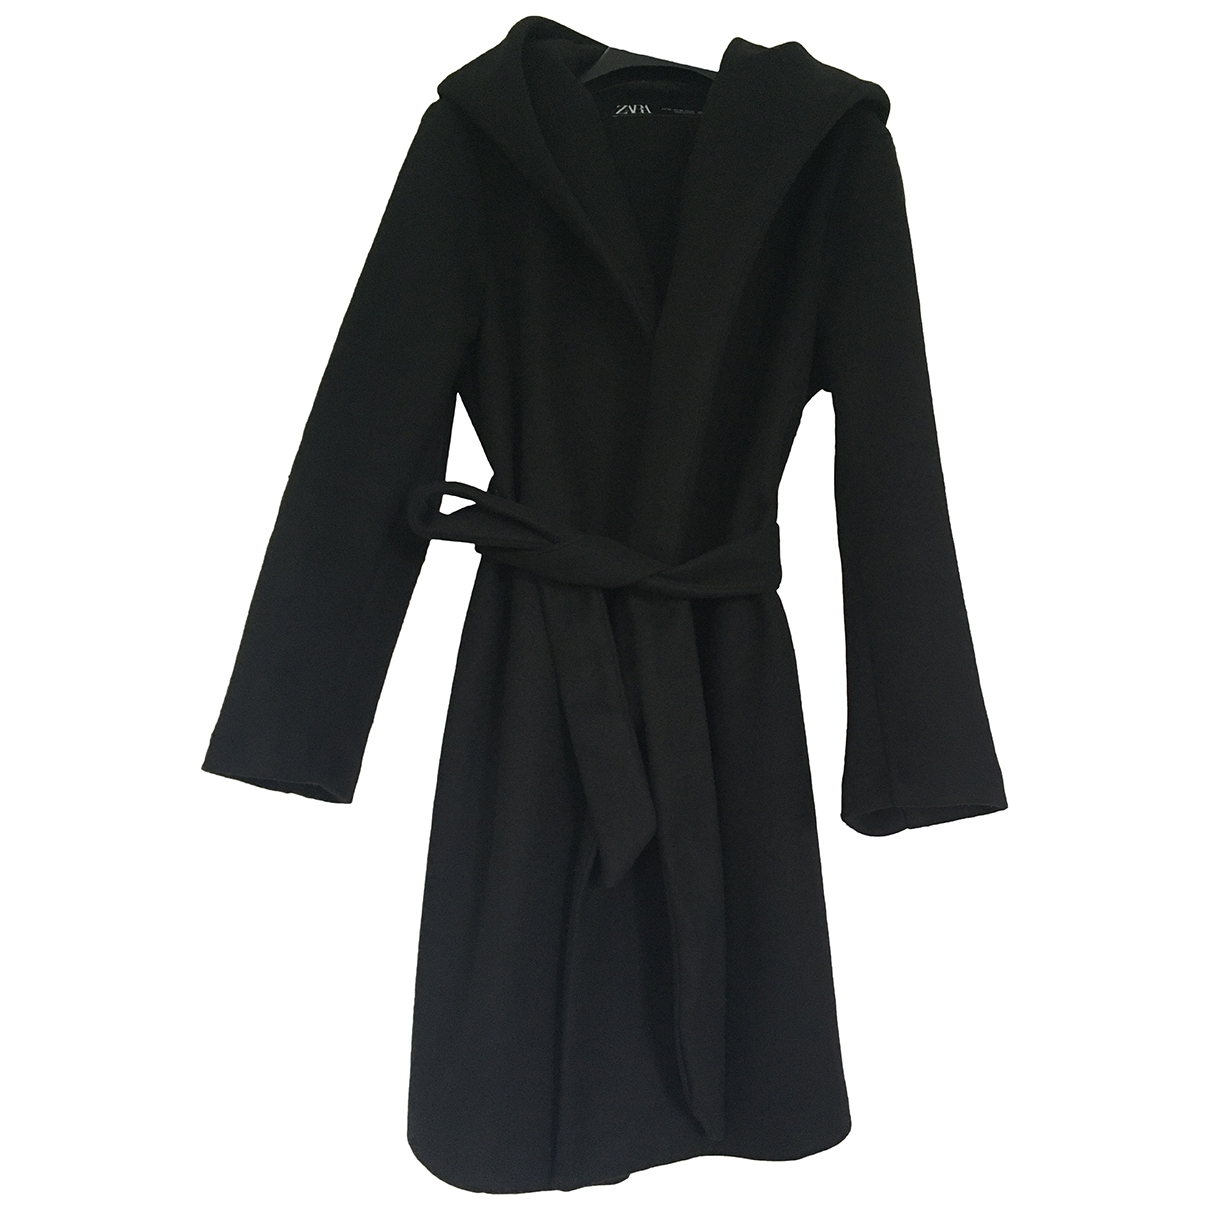 Zara \N Black coat for Women XS International